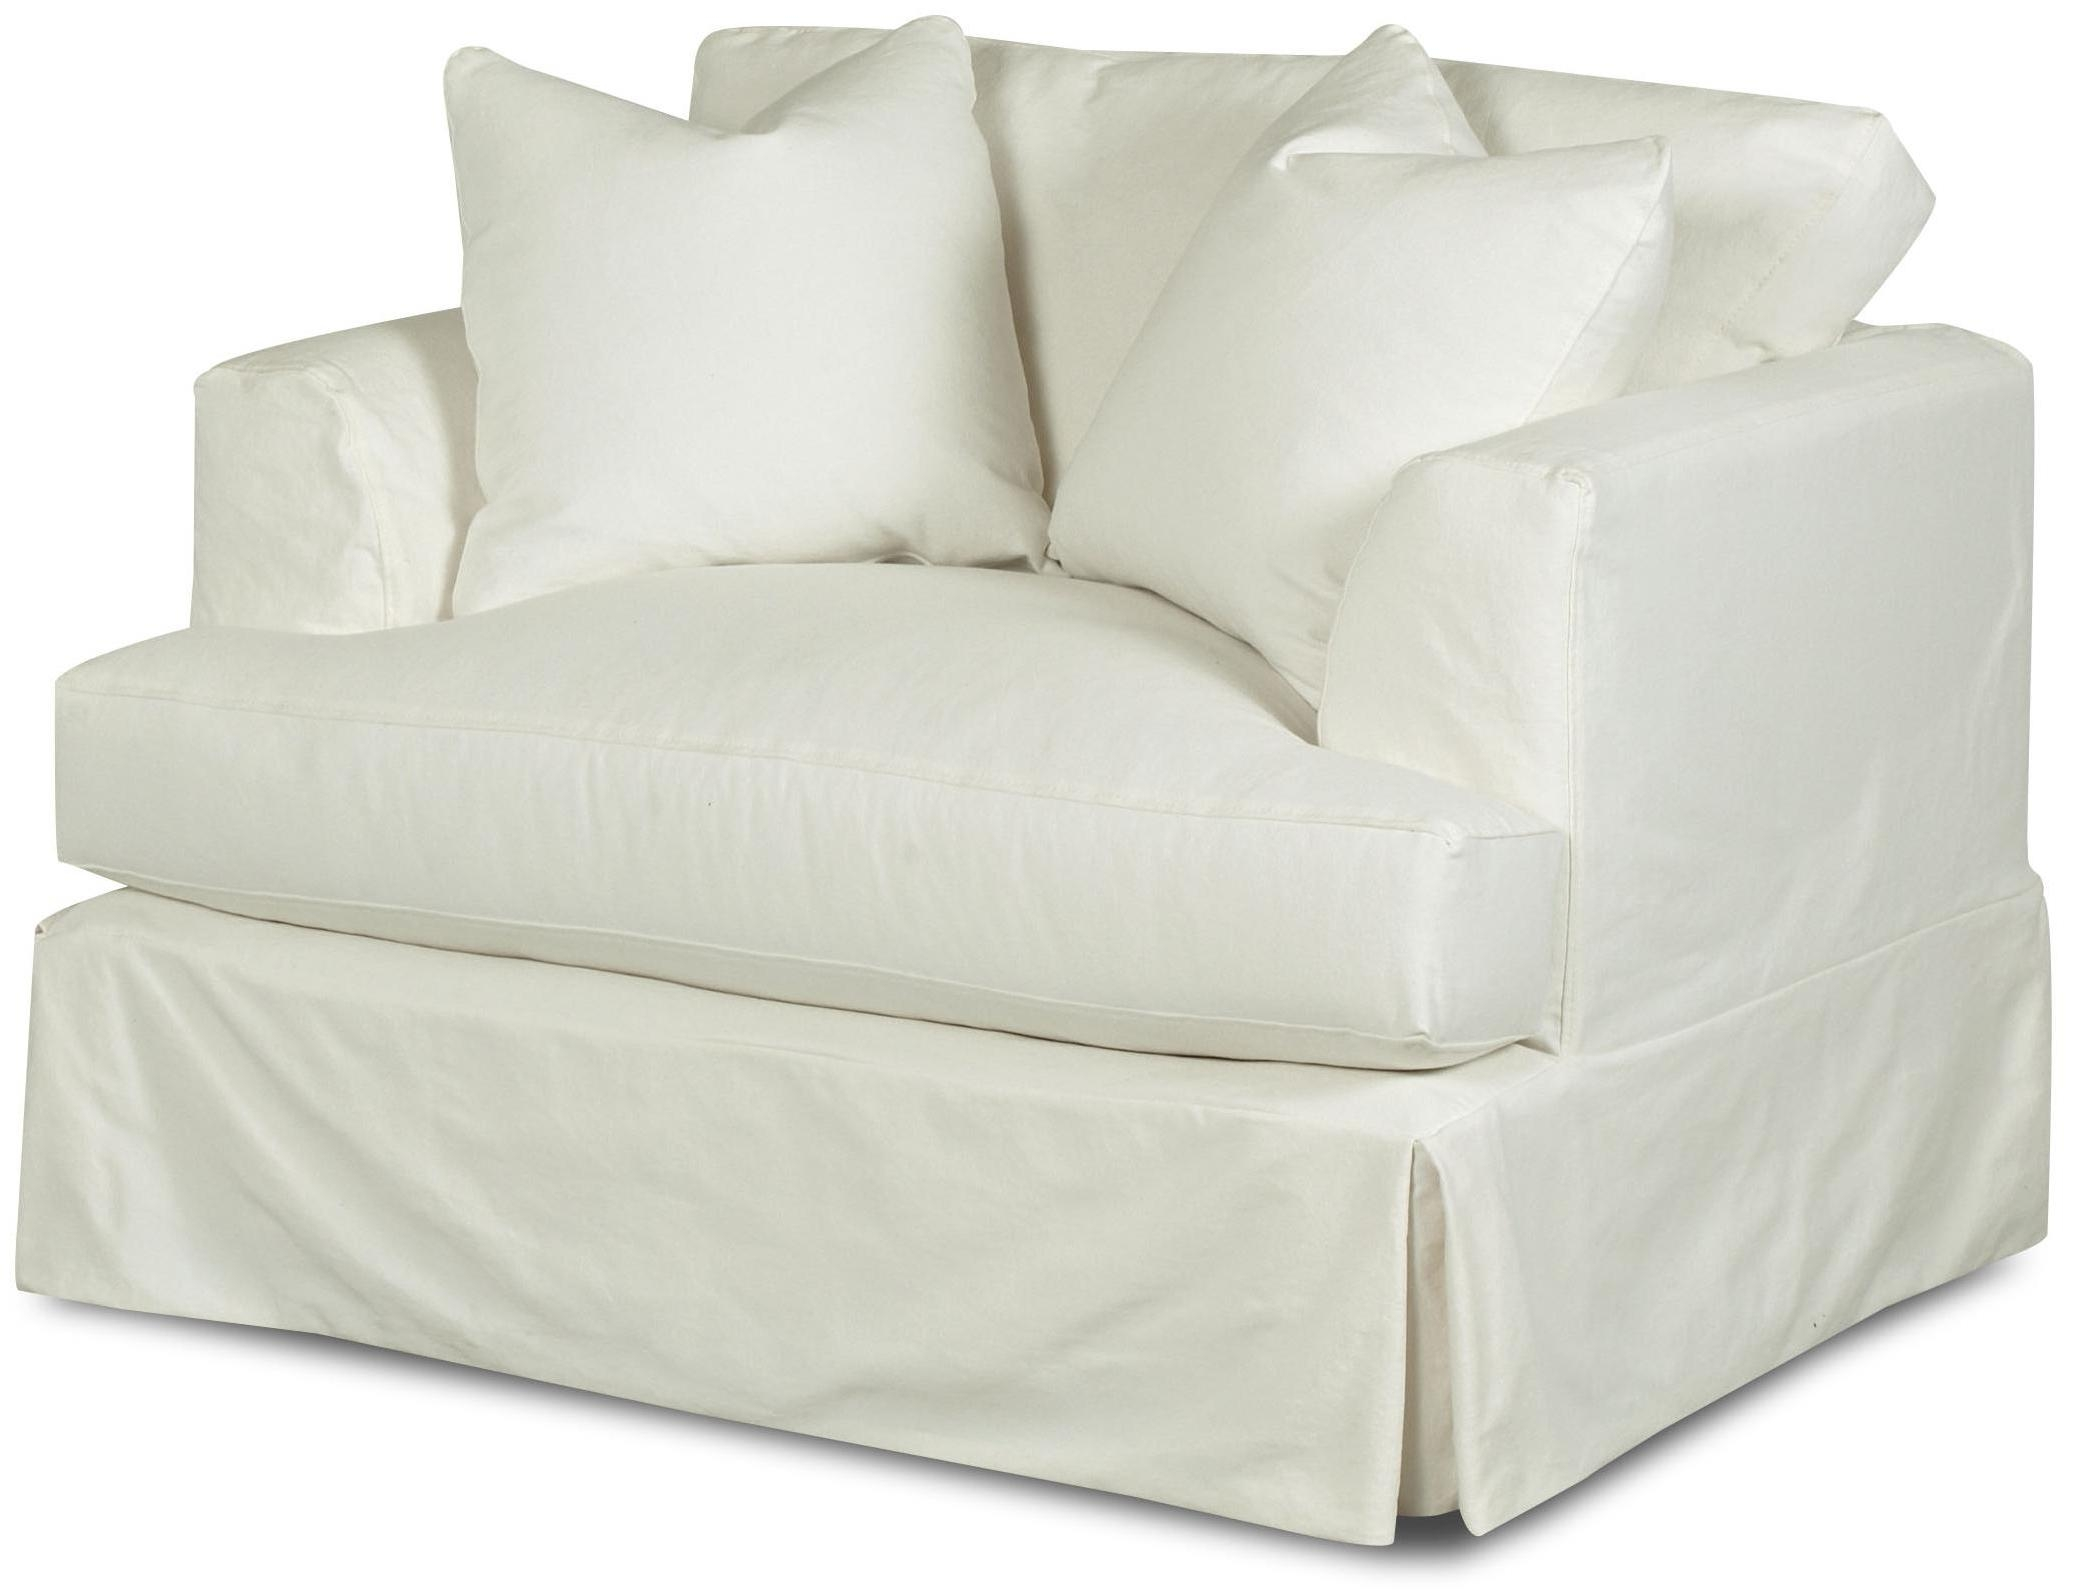 Ideas: Jcpenney Slipcovers | Couch Cover Walmart | Couch Seat With Regard To Individual Couch Seat Cushion Covers (View 10 of 20)